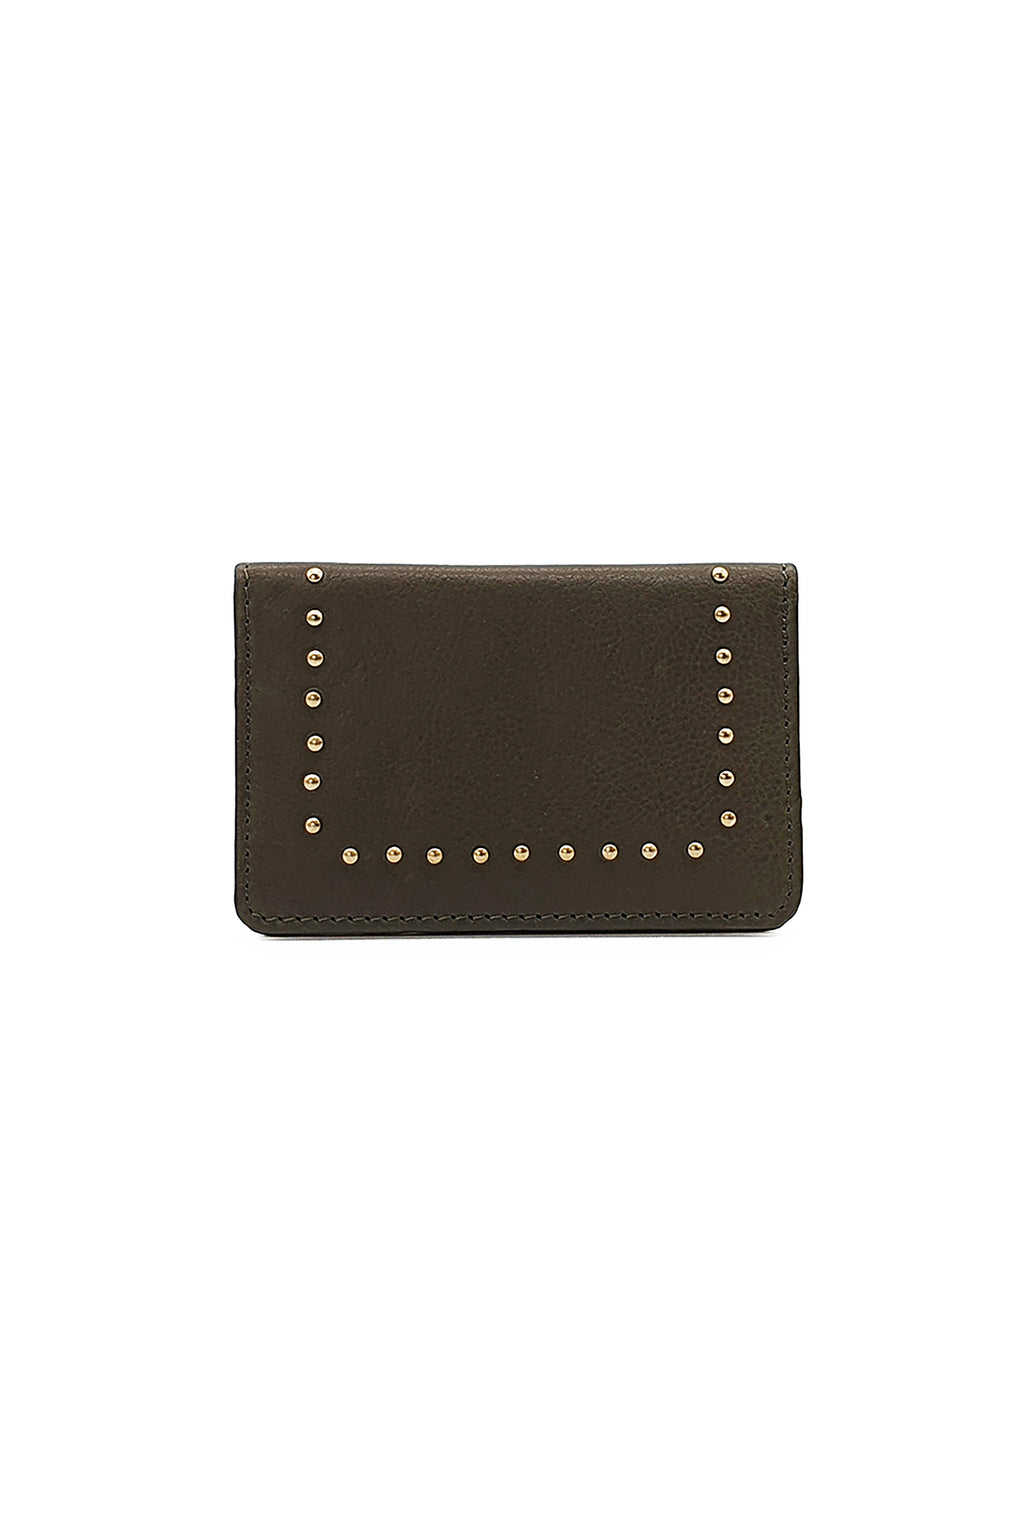 Tucker Bee Card Holder - Khaki